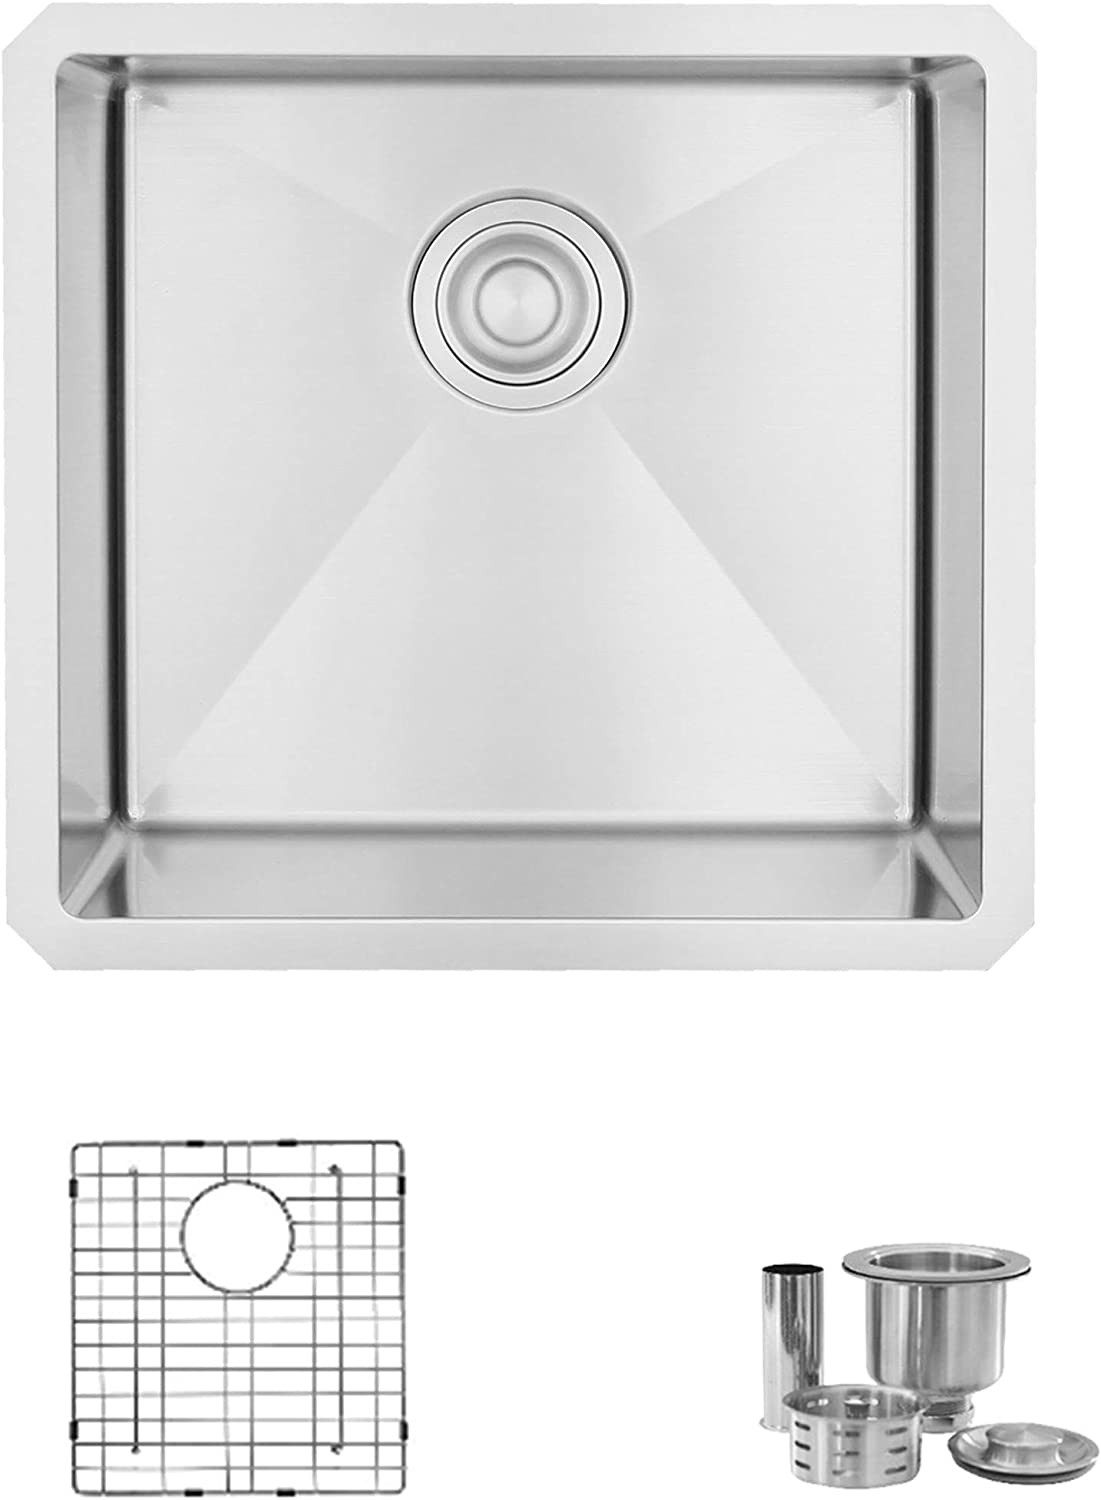 19 L X 18 W Stainless Steel Single Bowl Undermount 16g Kitchen Sink With Grid And Strainer S 308xg Amazon Ca Tools Home Improvement